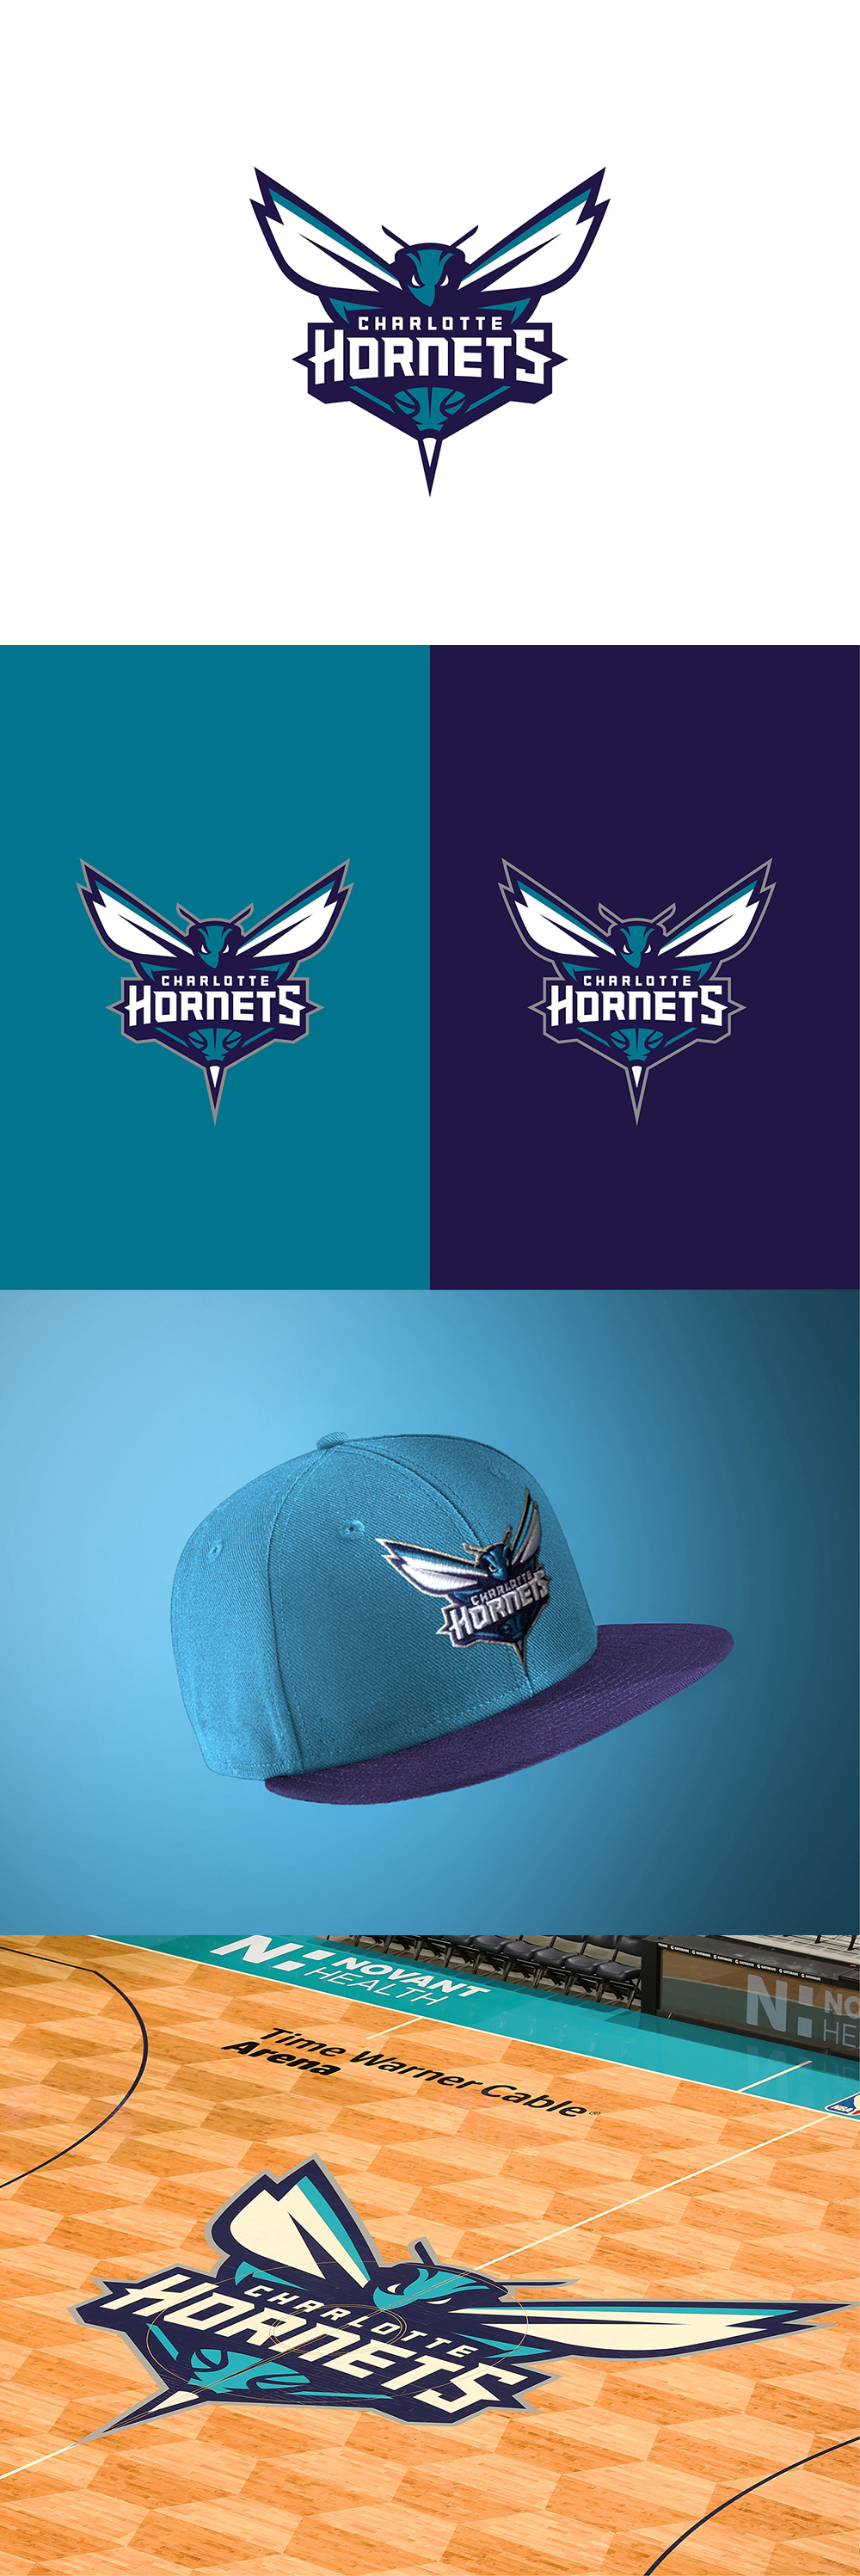 Basketball Team Logo: Charlotte Hornets by Darrin Crescenzi